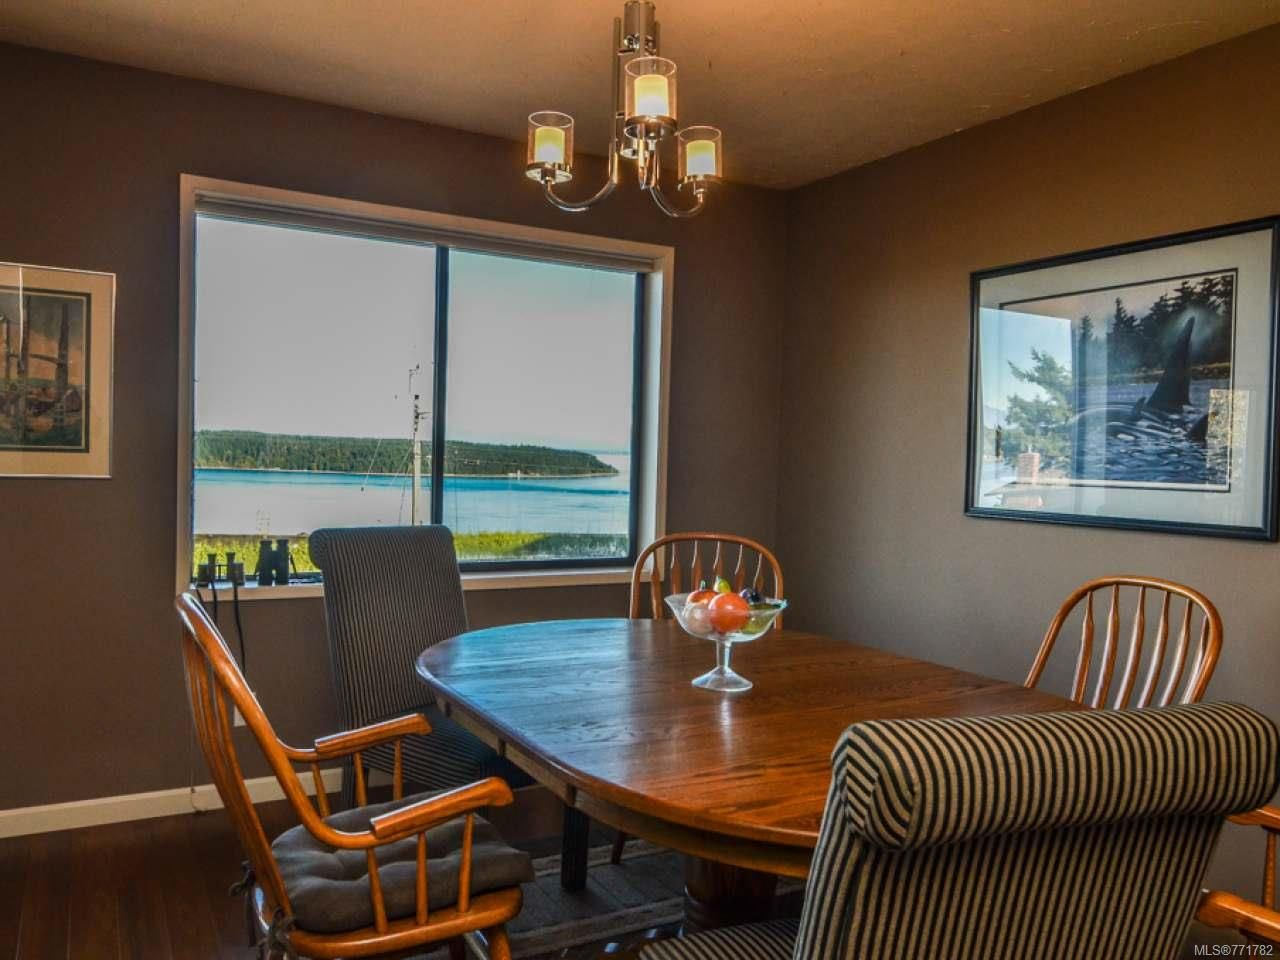 Photo 22: Photos: 451 S McLean St in CAMPBELL RIVER: CR Campbell River Central House for sale (Campbell River)  : MLS®# 771782